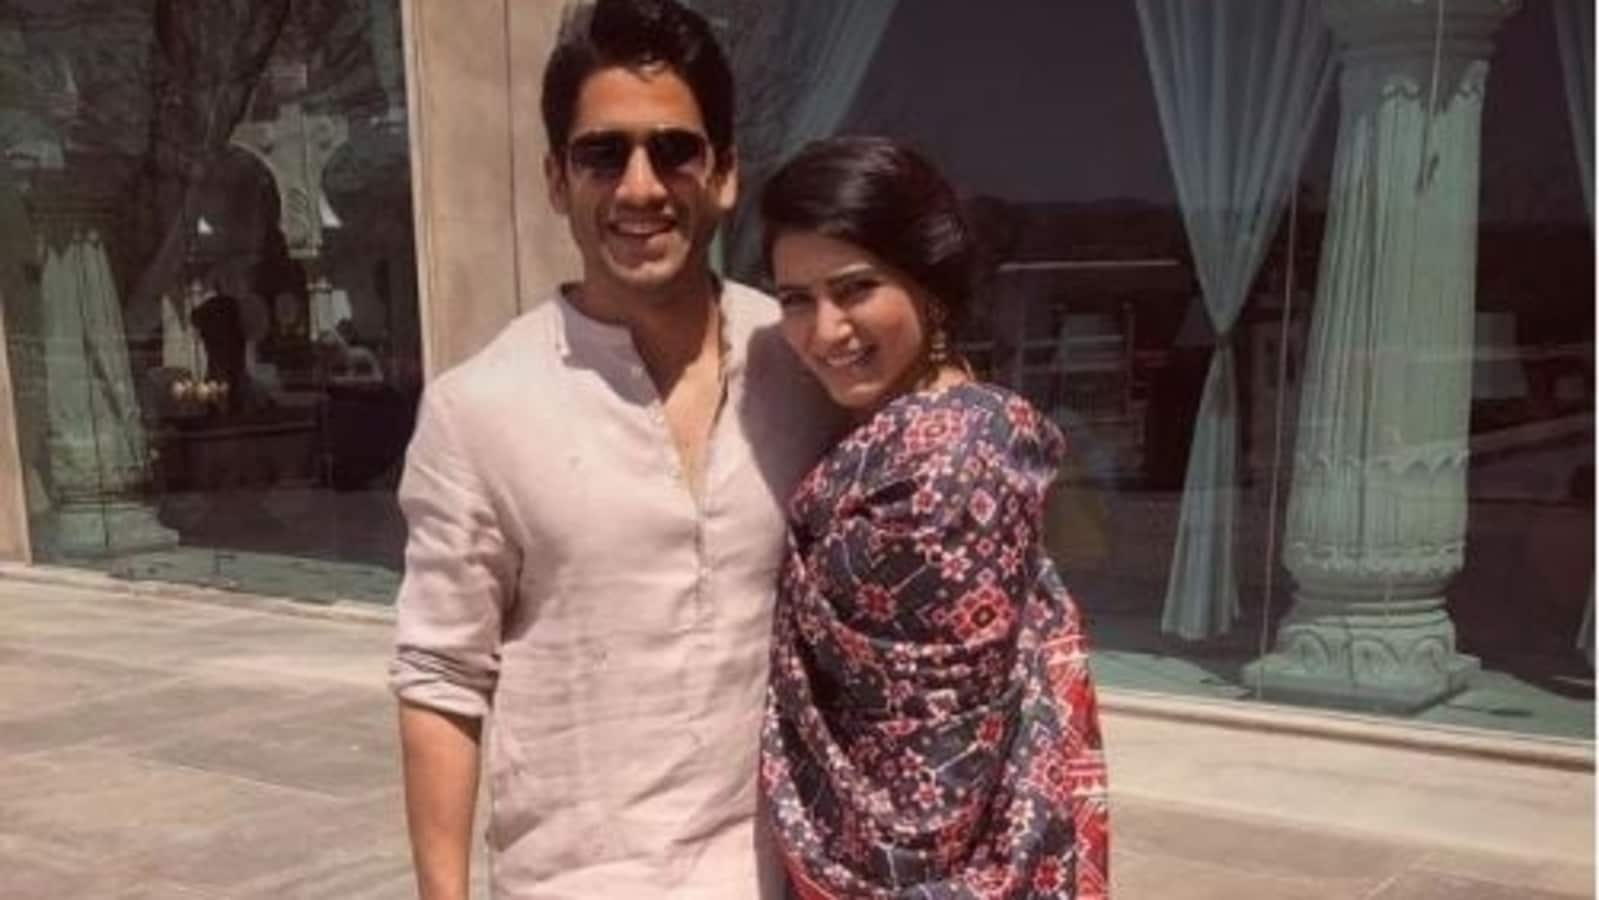 Samantha Akkineni says 'don't you have any sense' as reporter asks her about Naga Chaitanya separation rumours, watch